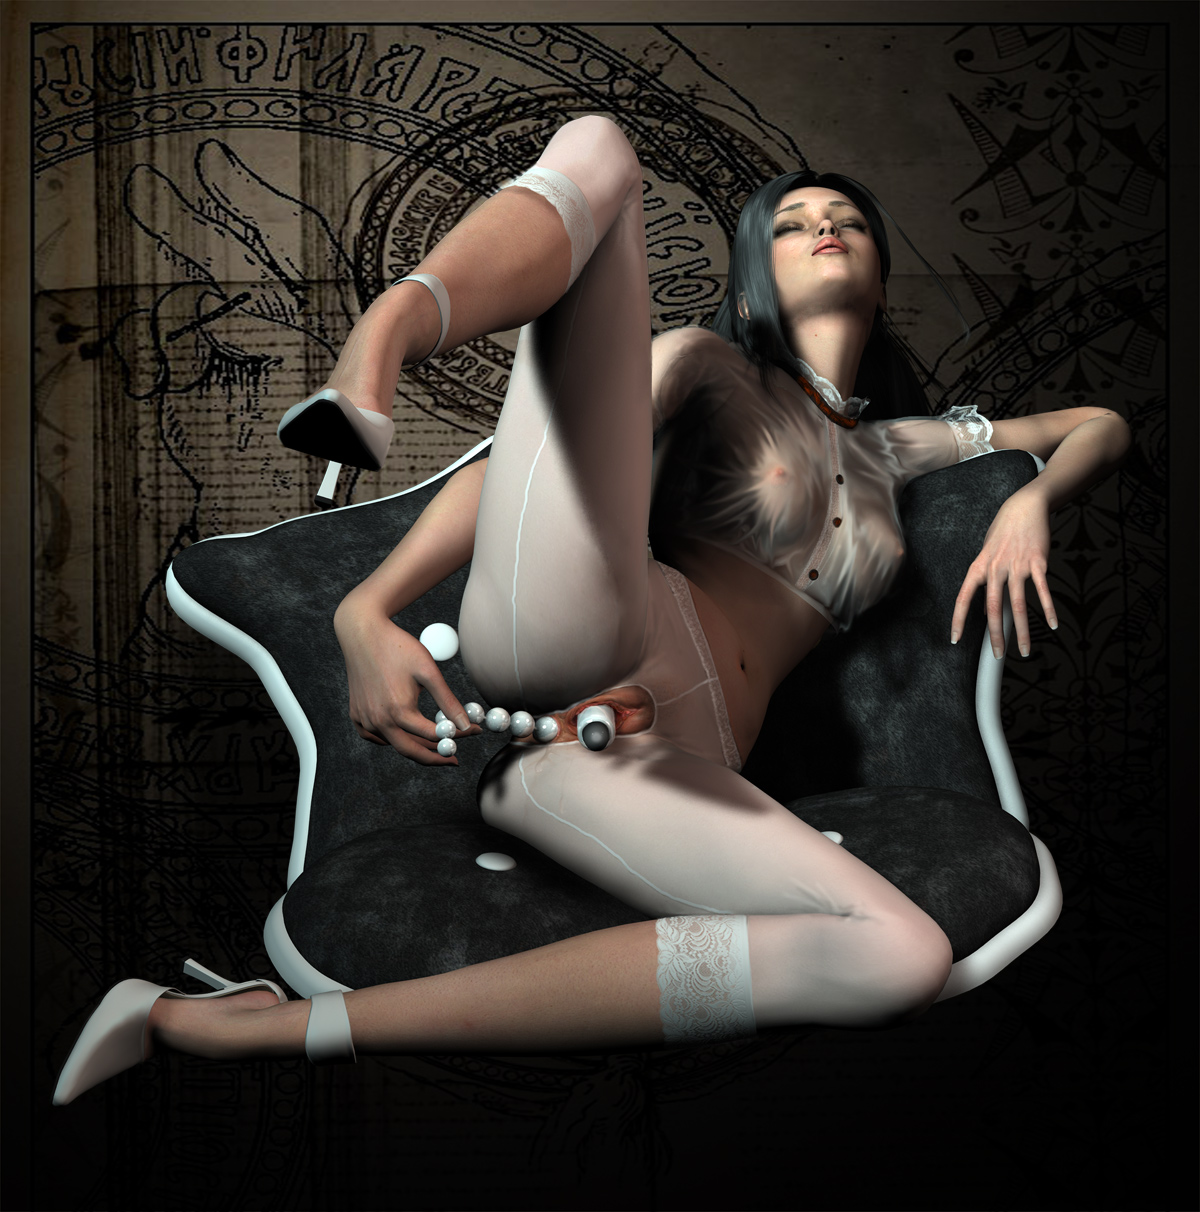 3d art gallery adult